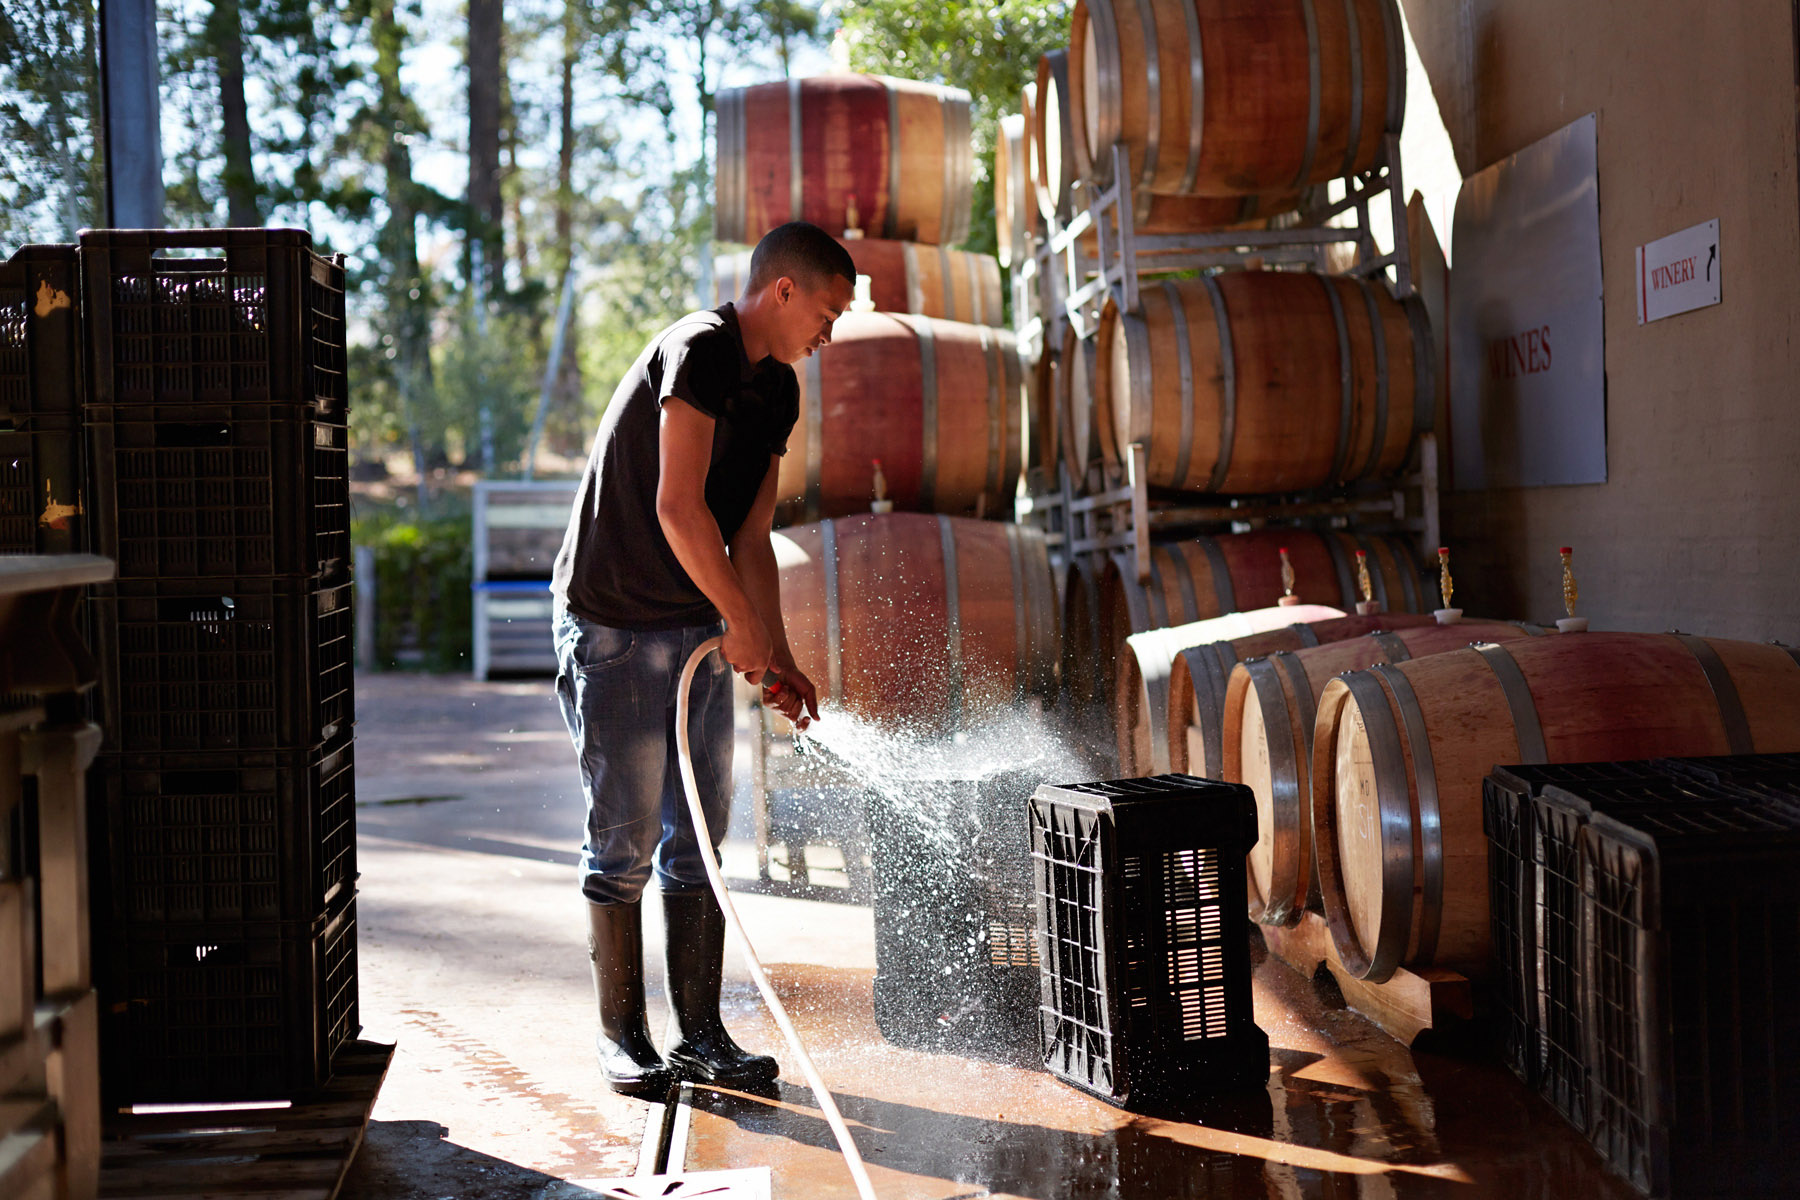 Man washing grape boxes at winery